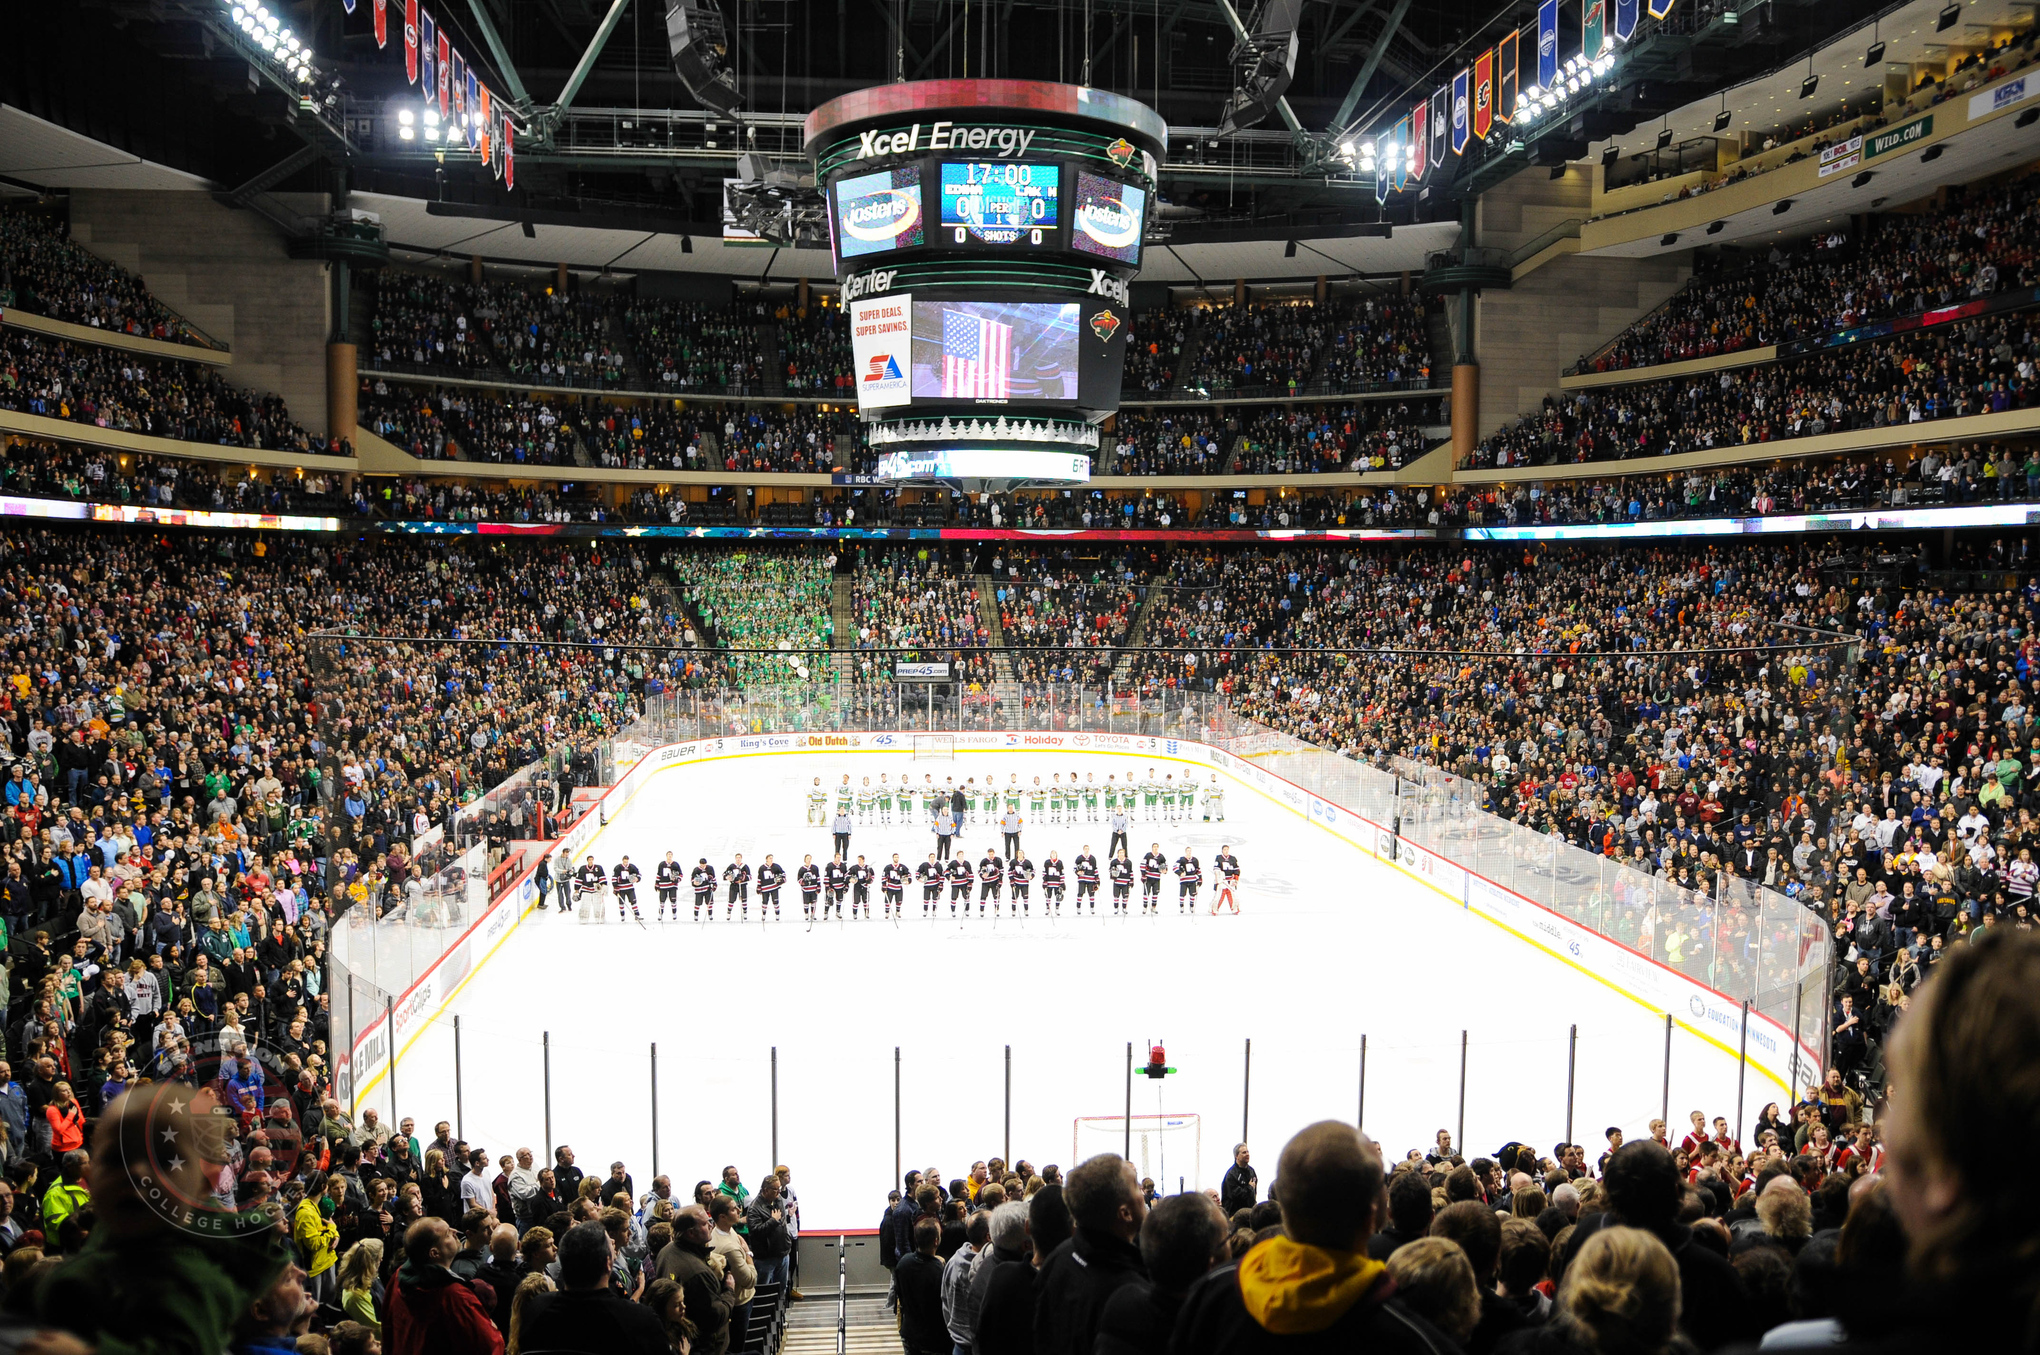 MN H.S.: Minnesota Mr. Hockey Finalists Named - Many To Play College Hockey In Upper Midwest